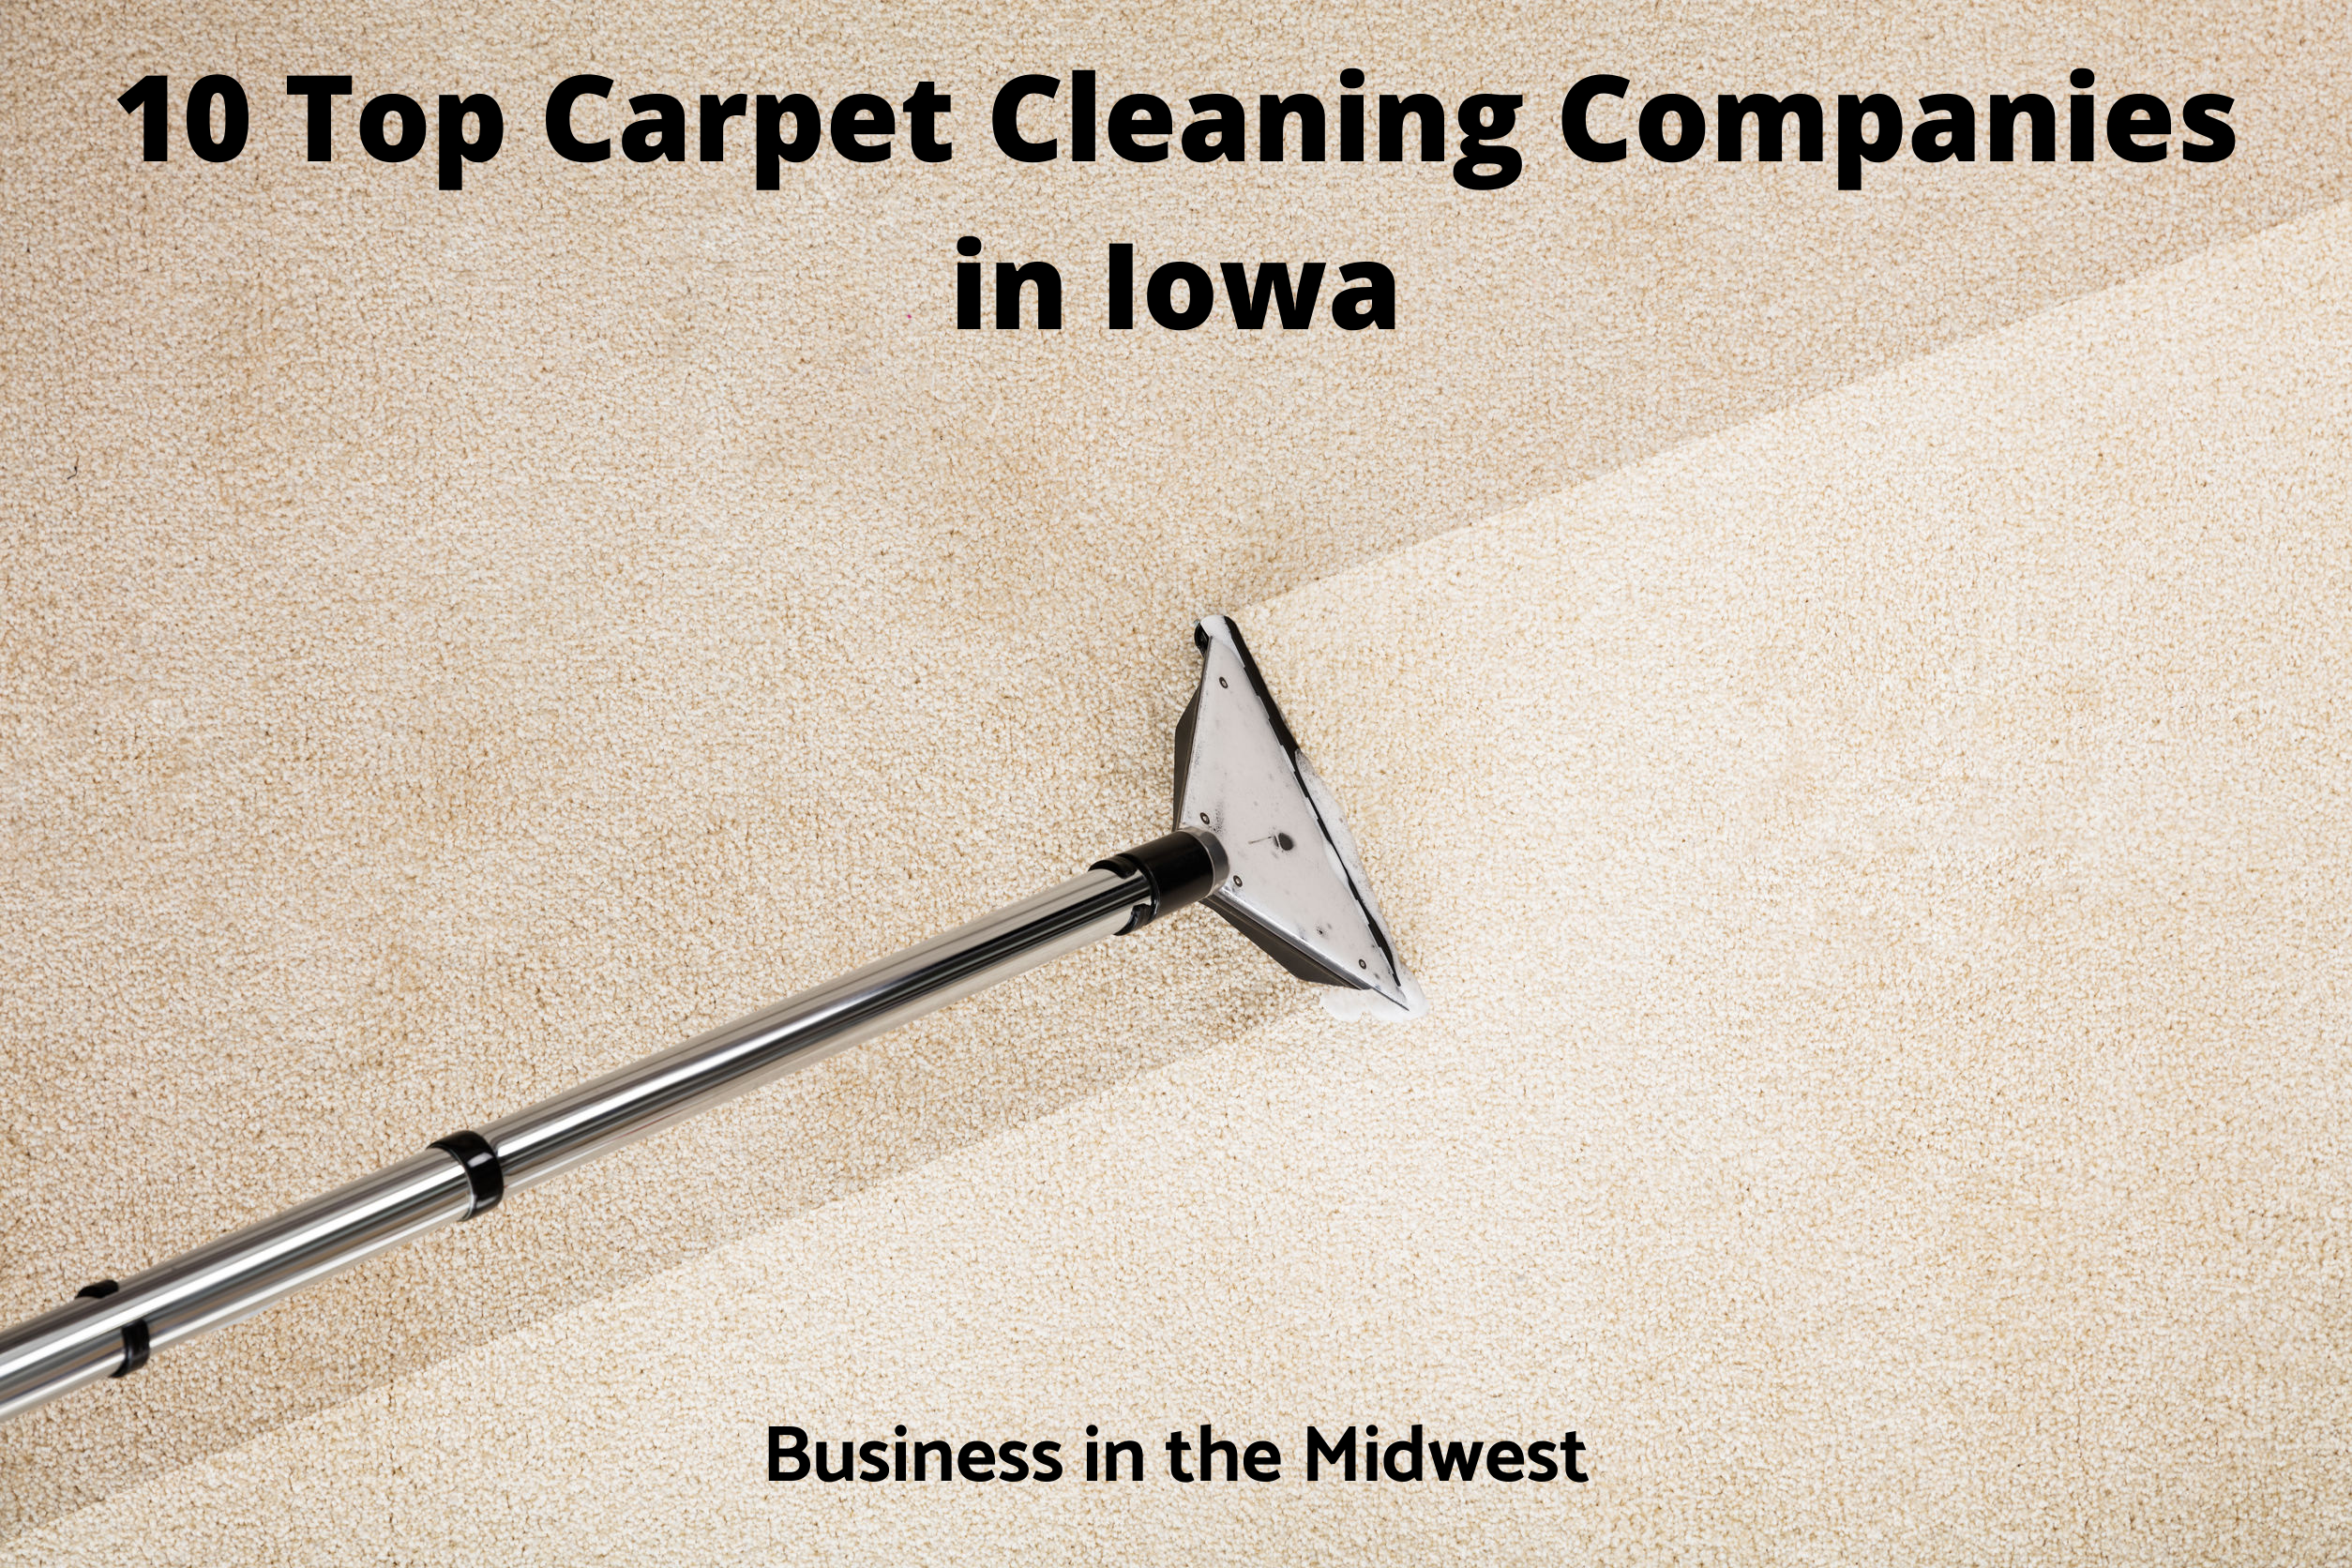 Carpet Cleaning Companies in Iowa